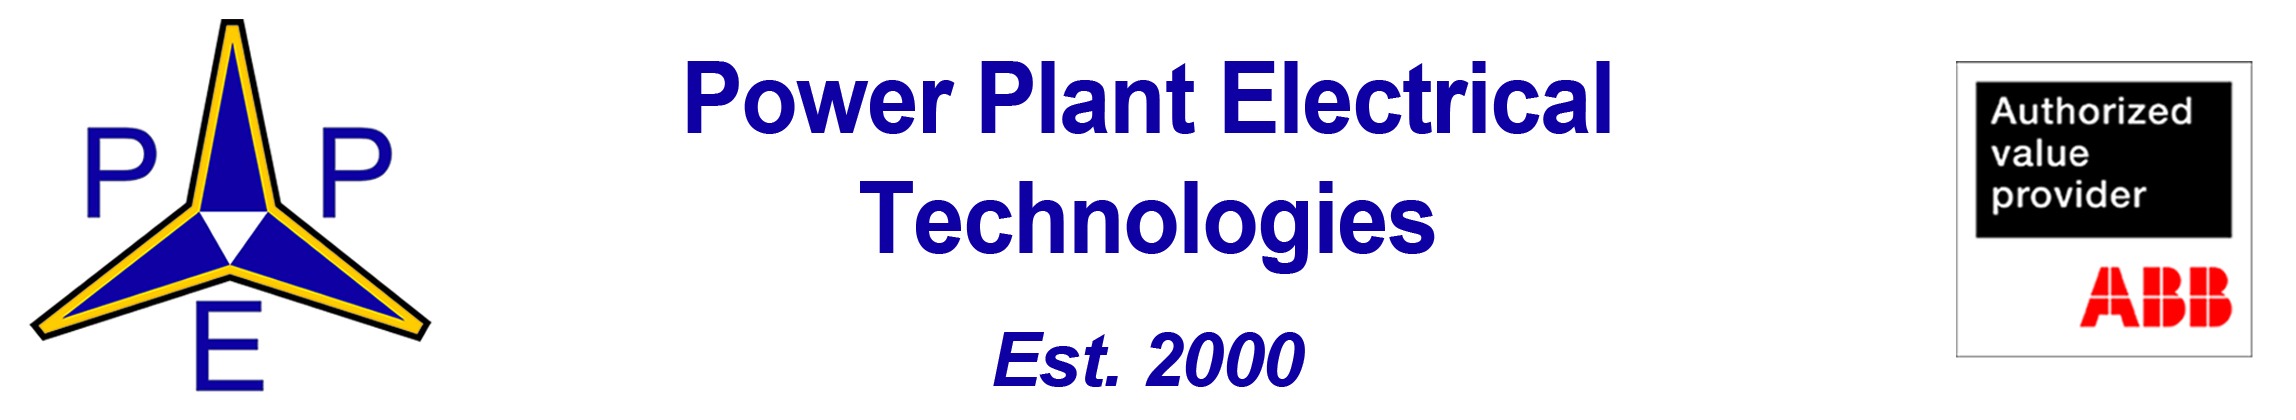 PPE Technologies Logo